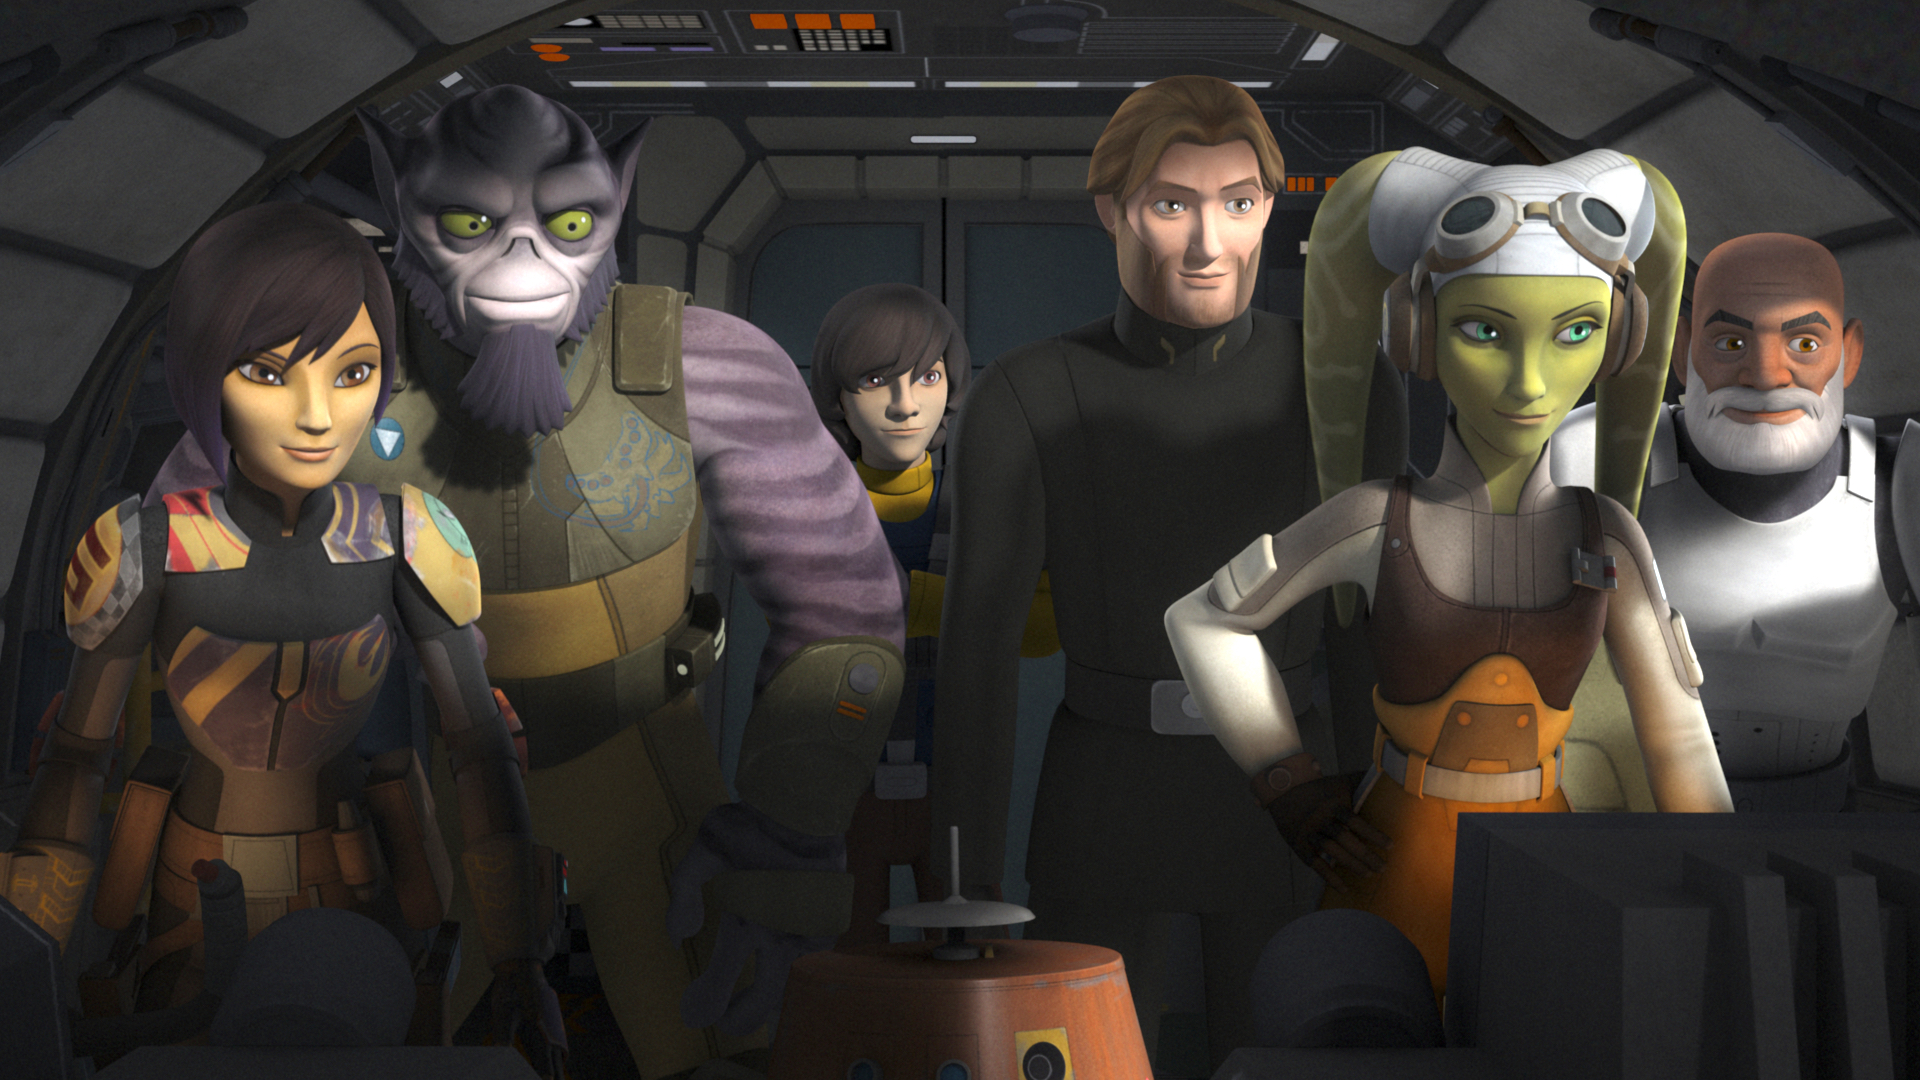 Star Wars Rebels Finale That Surprise Ending Cameo And The